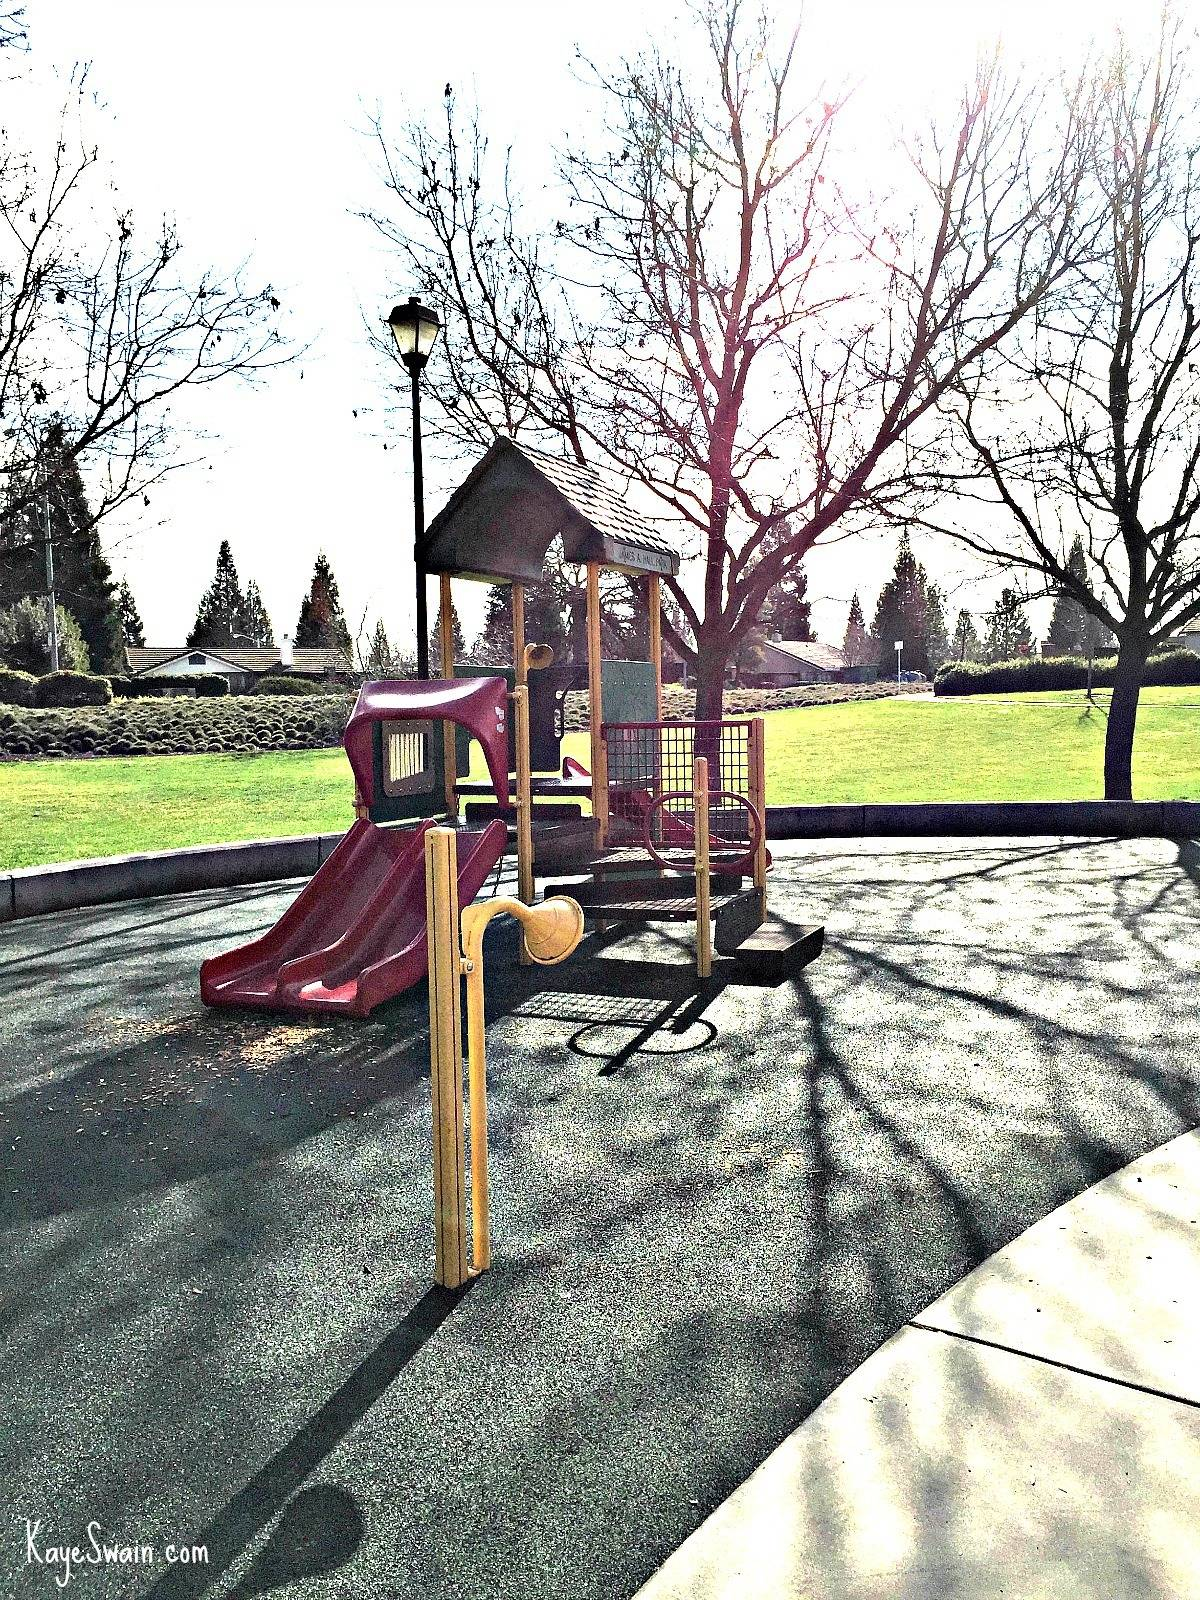 Hall Park in Roseville CA with toddler and regular playgrounds via Kaye Swain real estate agent blogger sharing Sacramento Area Joys